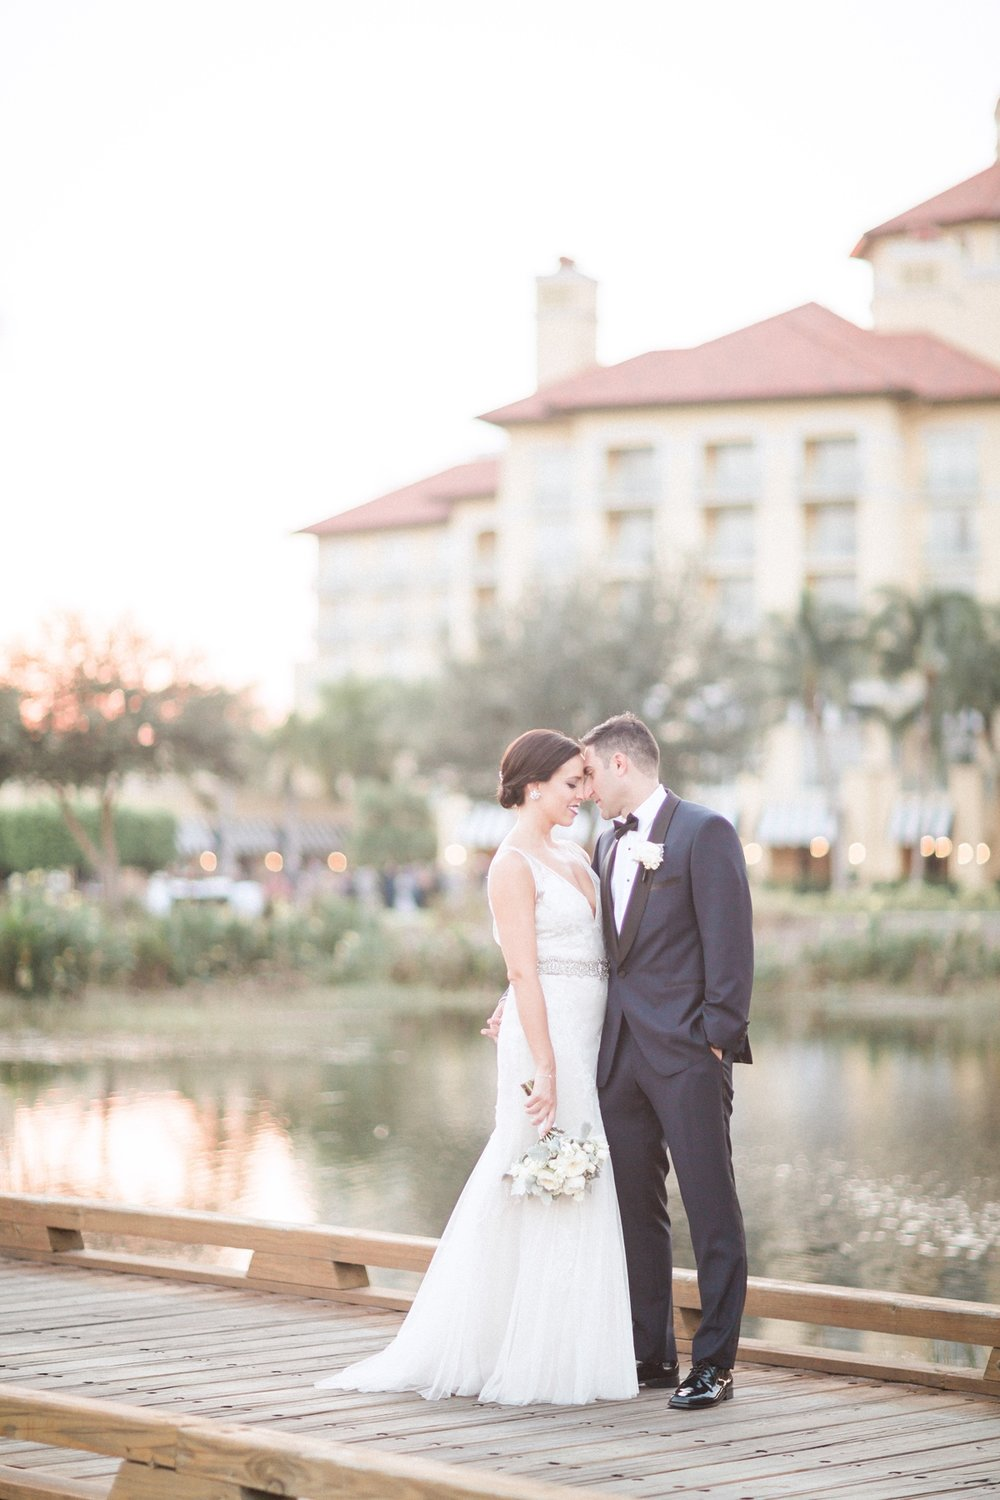 Ritz Carlton Naples Resort Wedding. Destination Wedding Photographer_0473.jpg